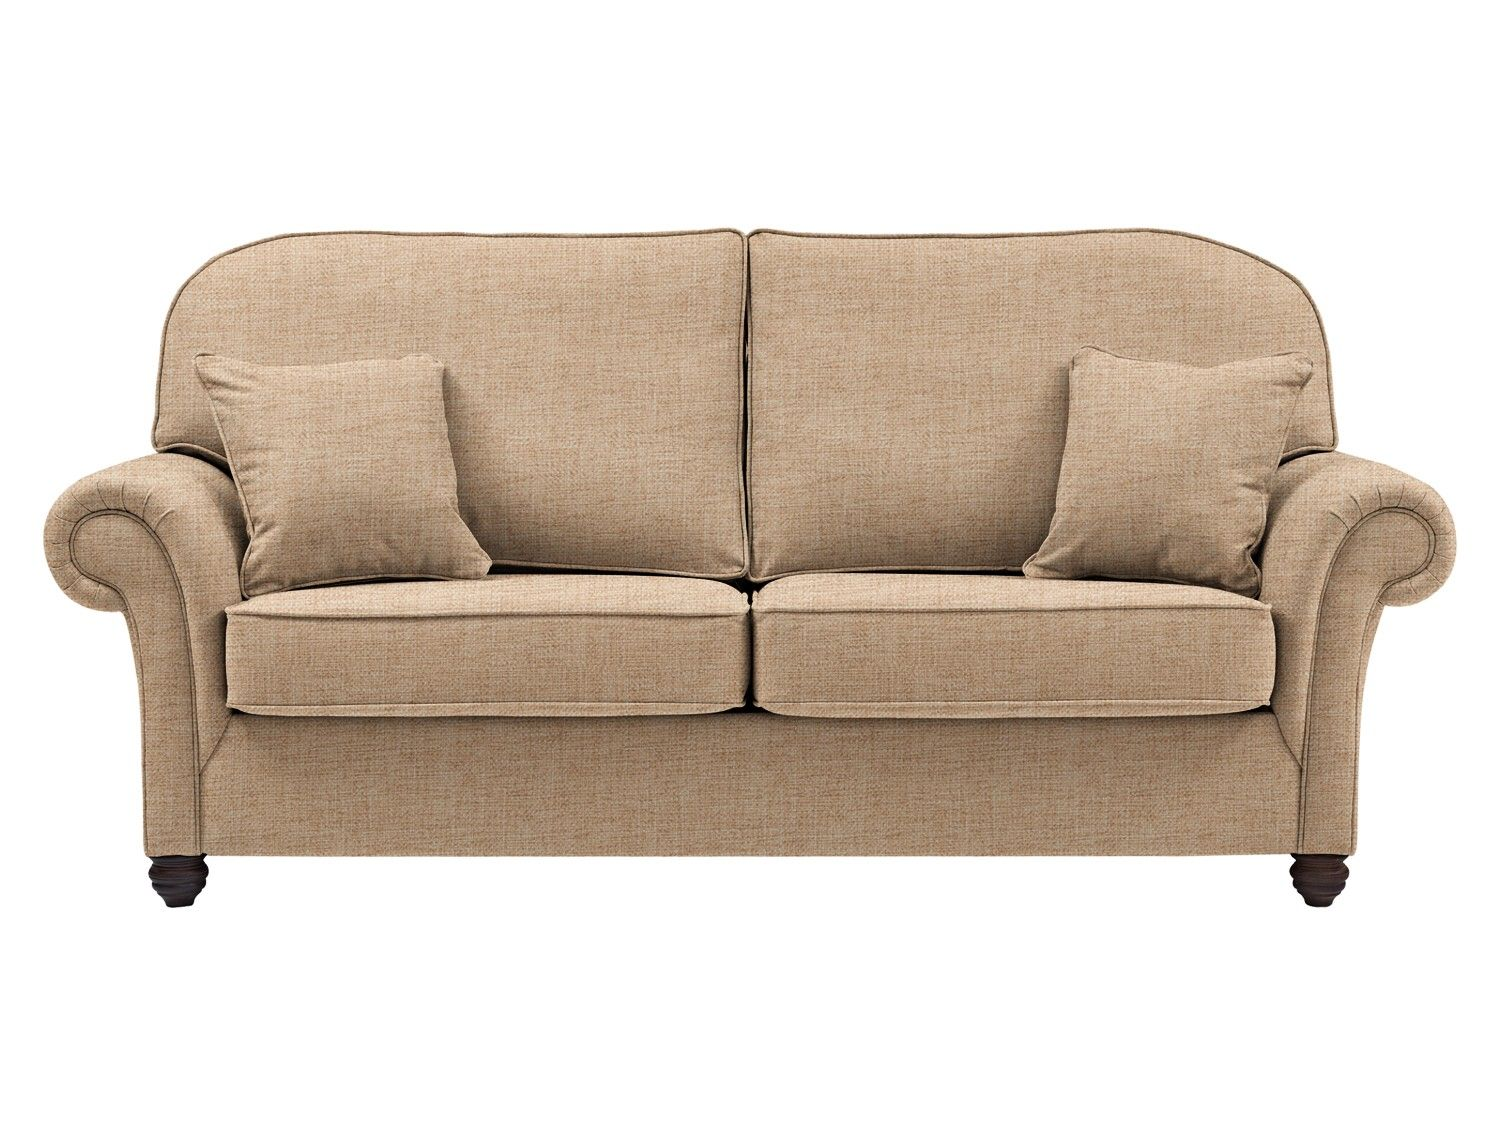 Hall · The Wardour 2 Seater Sofa Bed | Willow ...